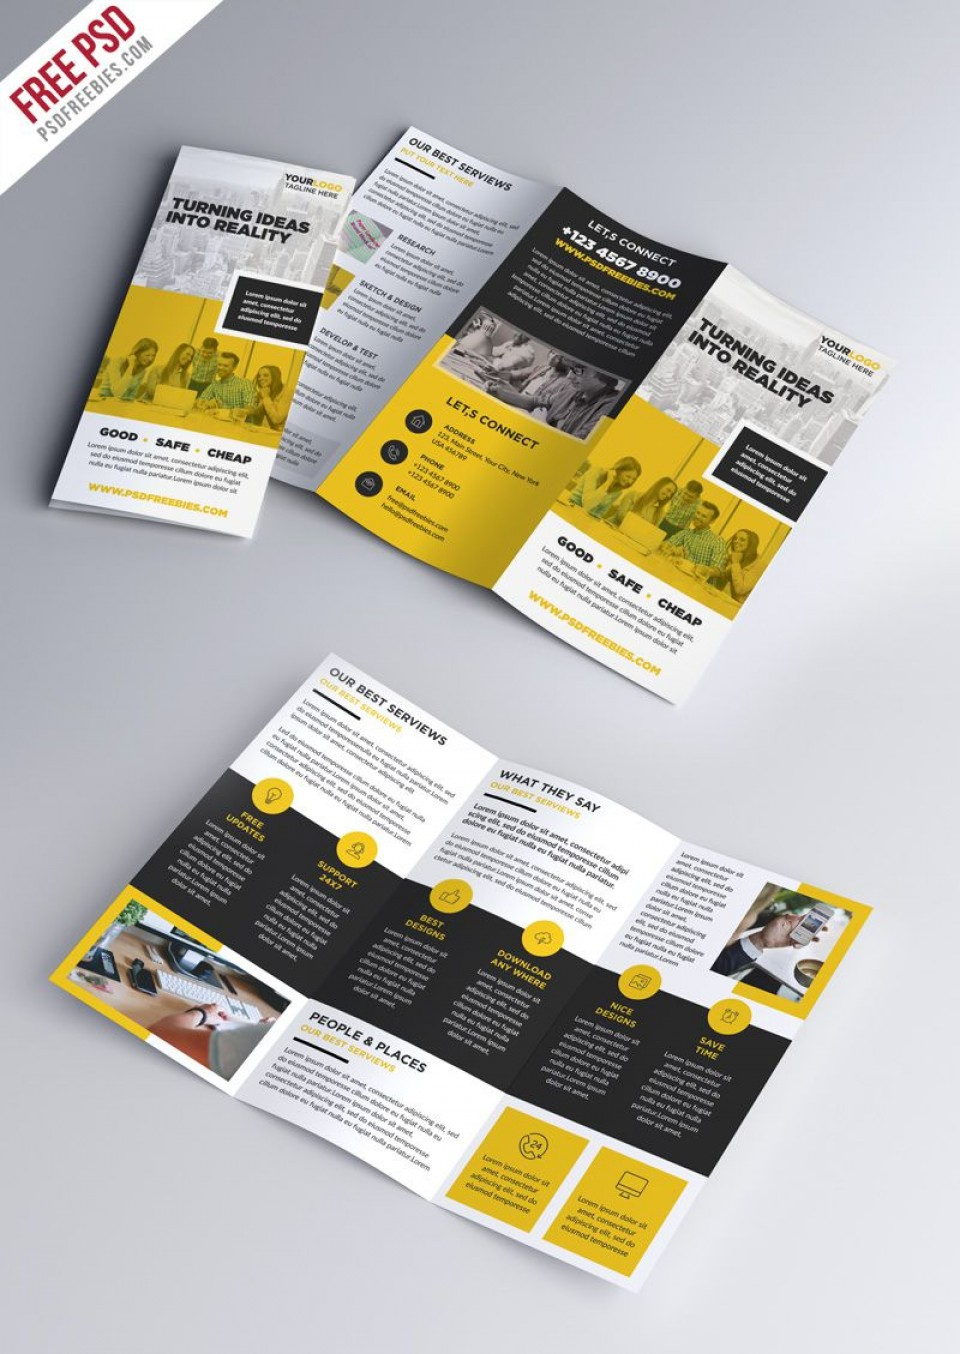 008 Excellent Three Fold Brochure Template Psd Photo  Free 3 A4 Tri Download960